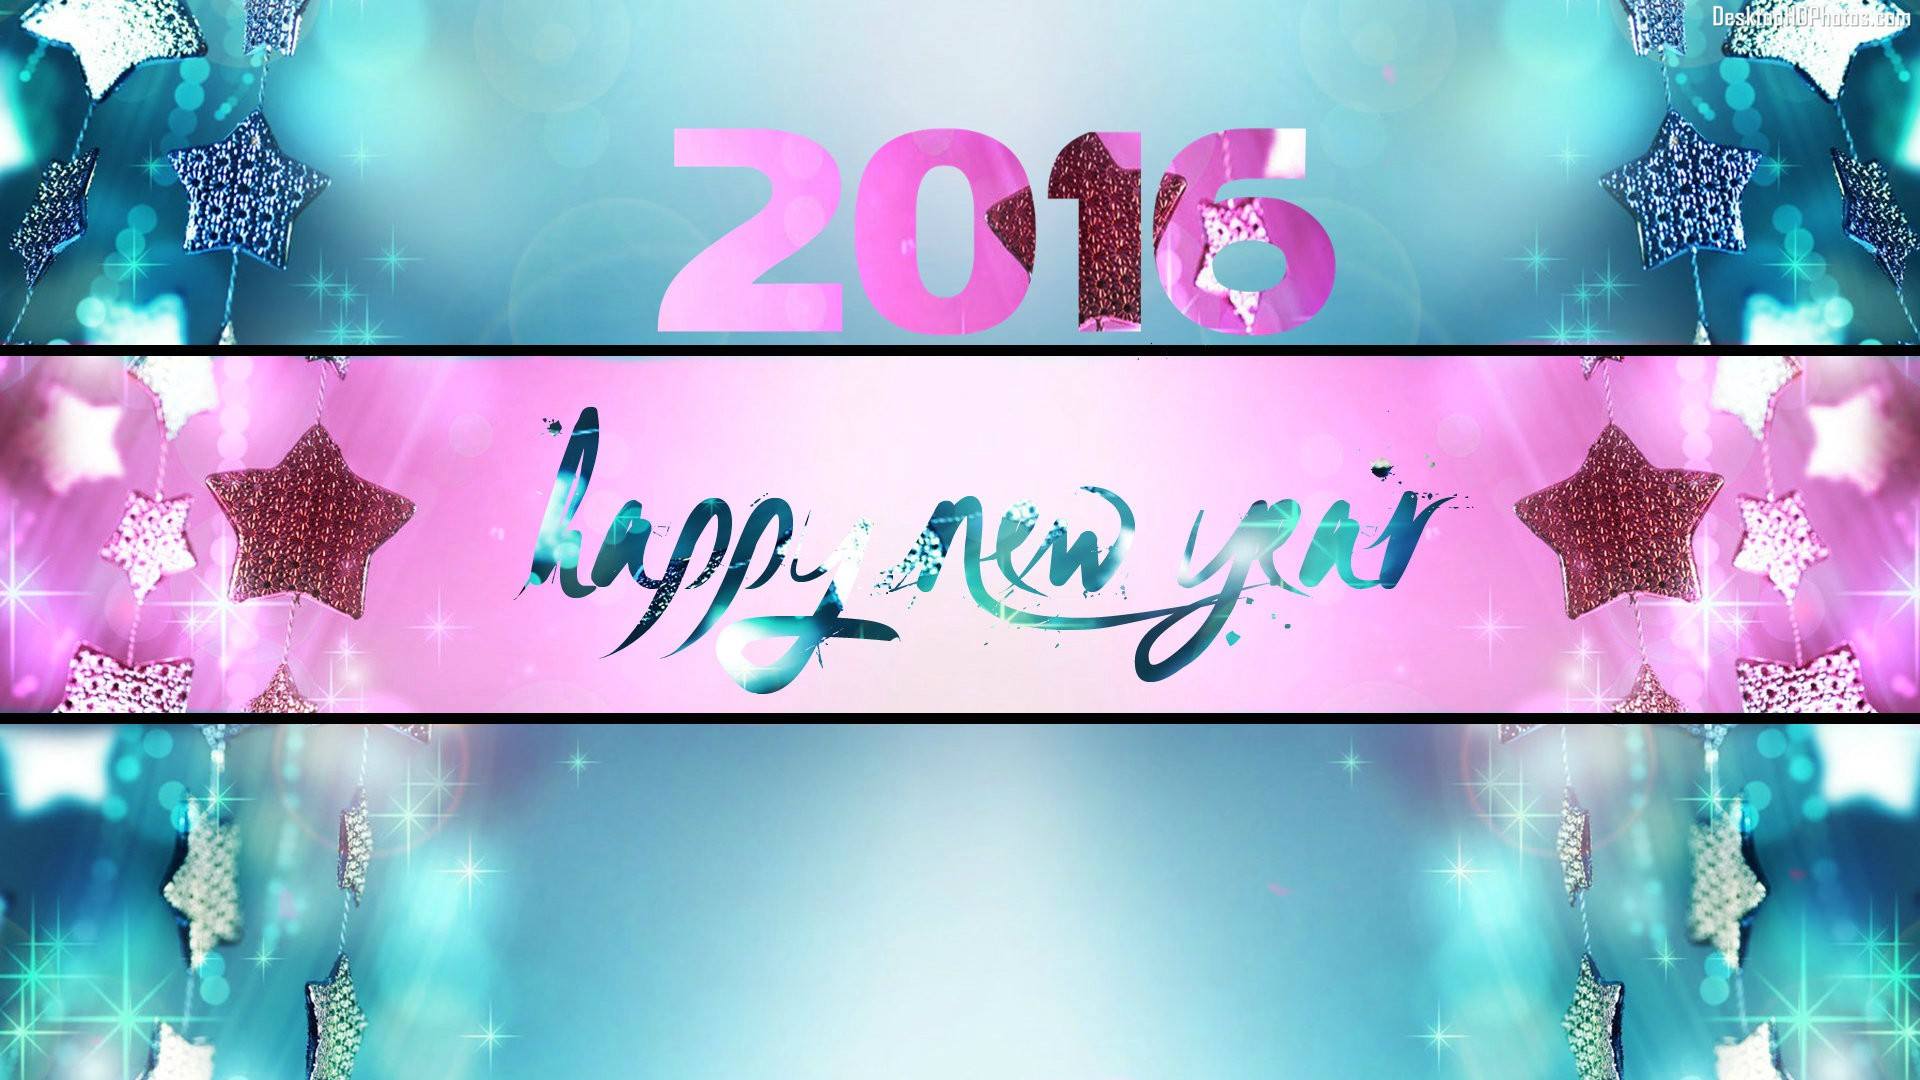 Happy New Year 2016 Desktop Wallpaper   HD Wallpapers 1920x1080